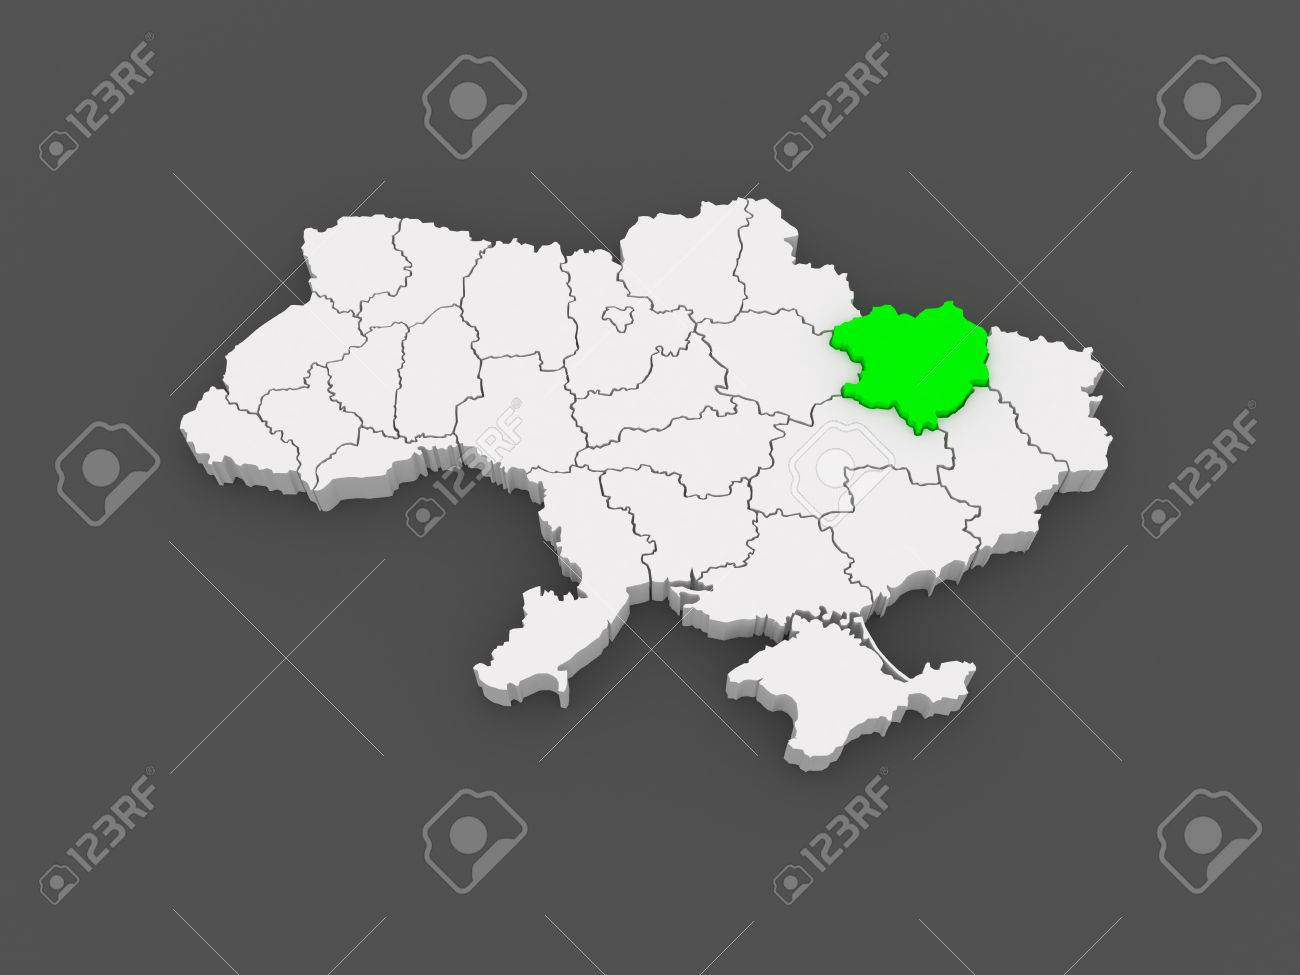 Map of Kharkov region. Ukraine. 3d Kharkov Ukraine Map World on poltava map, detailed city street map, donbass ukraine map, dnipropetrovsk ukraine map, donetsk map, ato ukraine map, ukraine religion map, kiev map, odessa ukraine map, east ukraine map, belaya tserkov ukraine map, bessarabia ukraine map, crimea region ukraine map, ukraine military bases map, minsk map, the lake of ozarks map, vinnytsia ukraine map, kramatorsk ukraine map, kharkiv military map, kharkiv ukraine map,